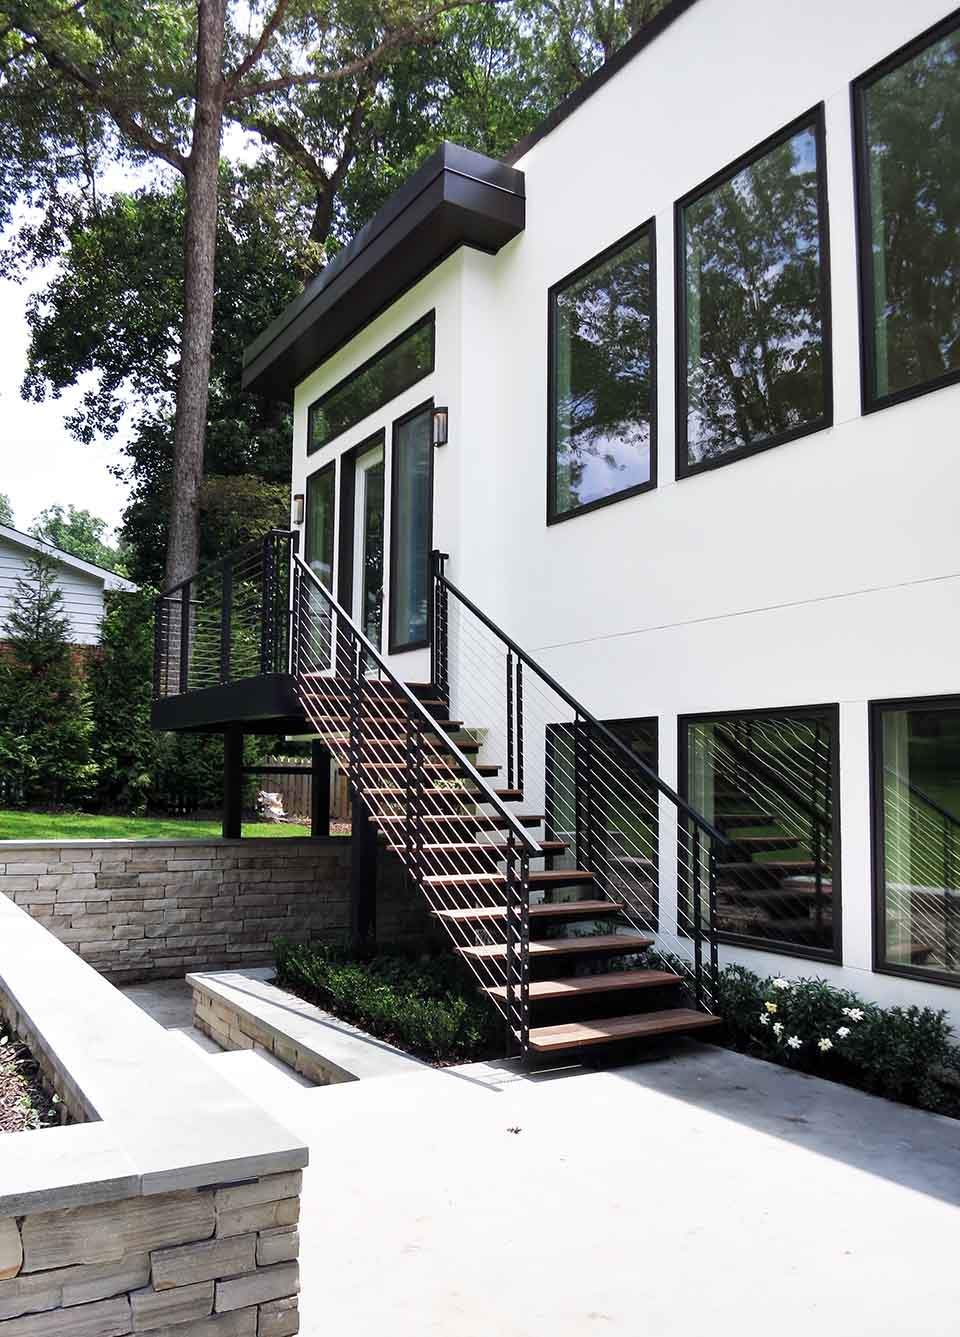 Exterior Stairs Southern Staircase Artistic Stairs | Modern Stairs Design Outdoor | Indoor | Prefab Metal Residential Exterior | Terrace | Metal | Railing